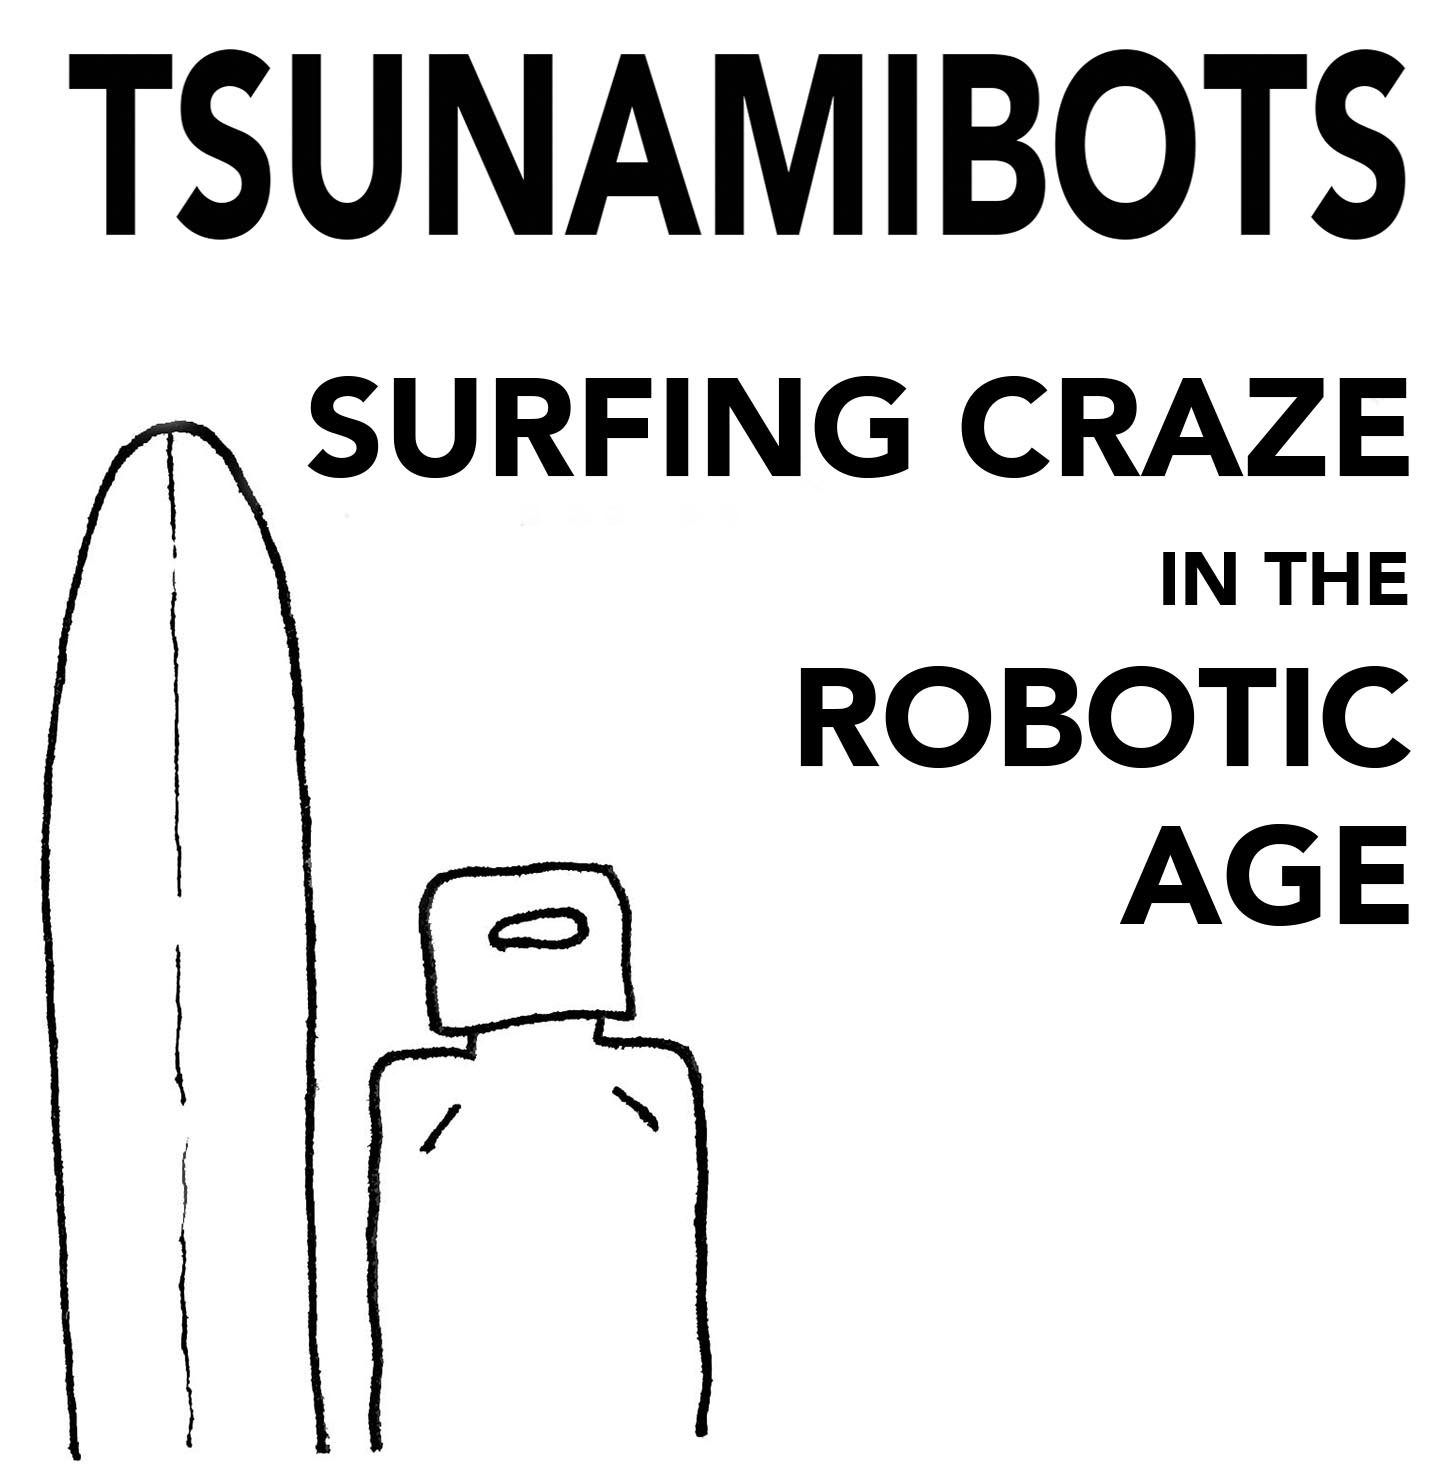 The Tsunamibots